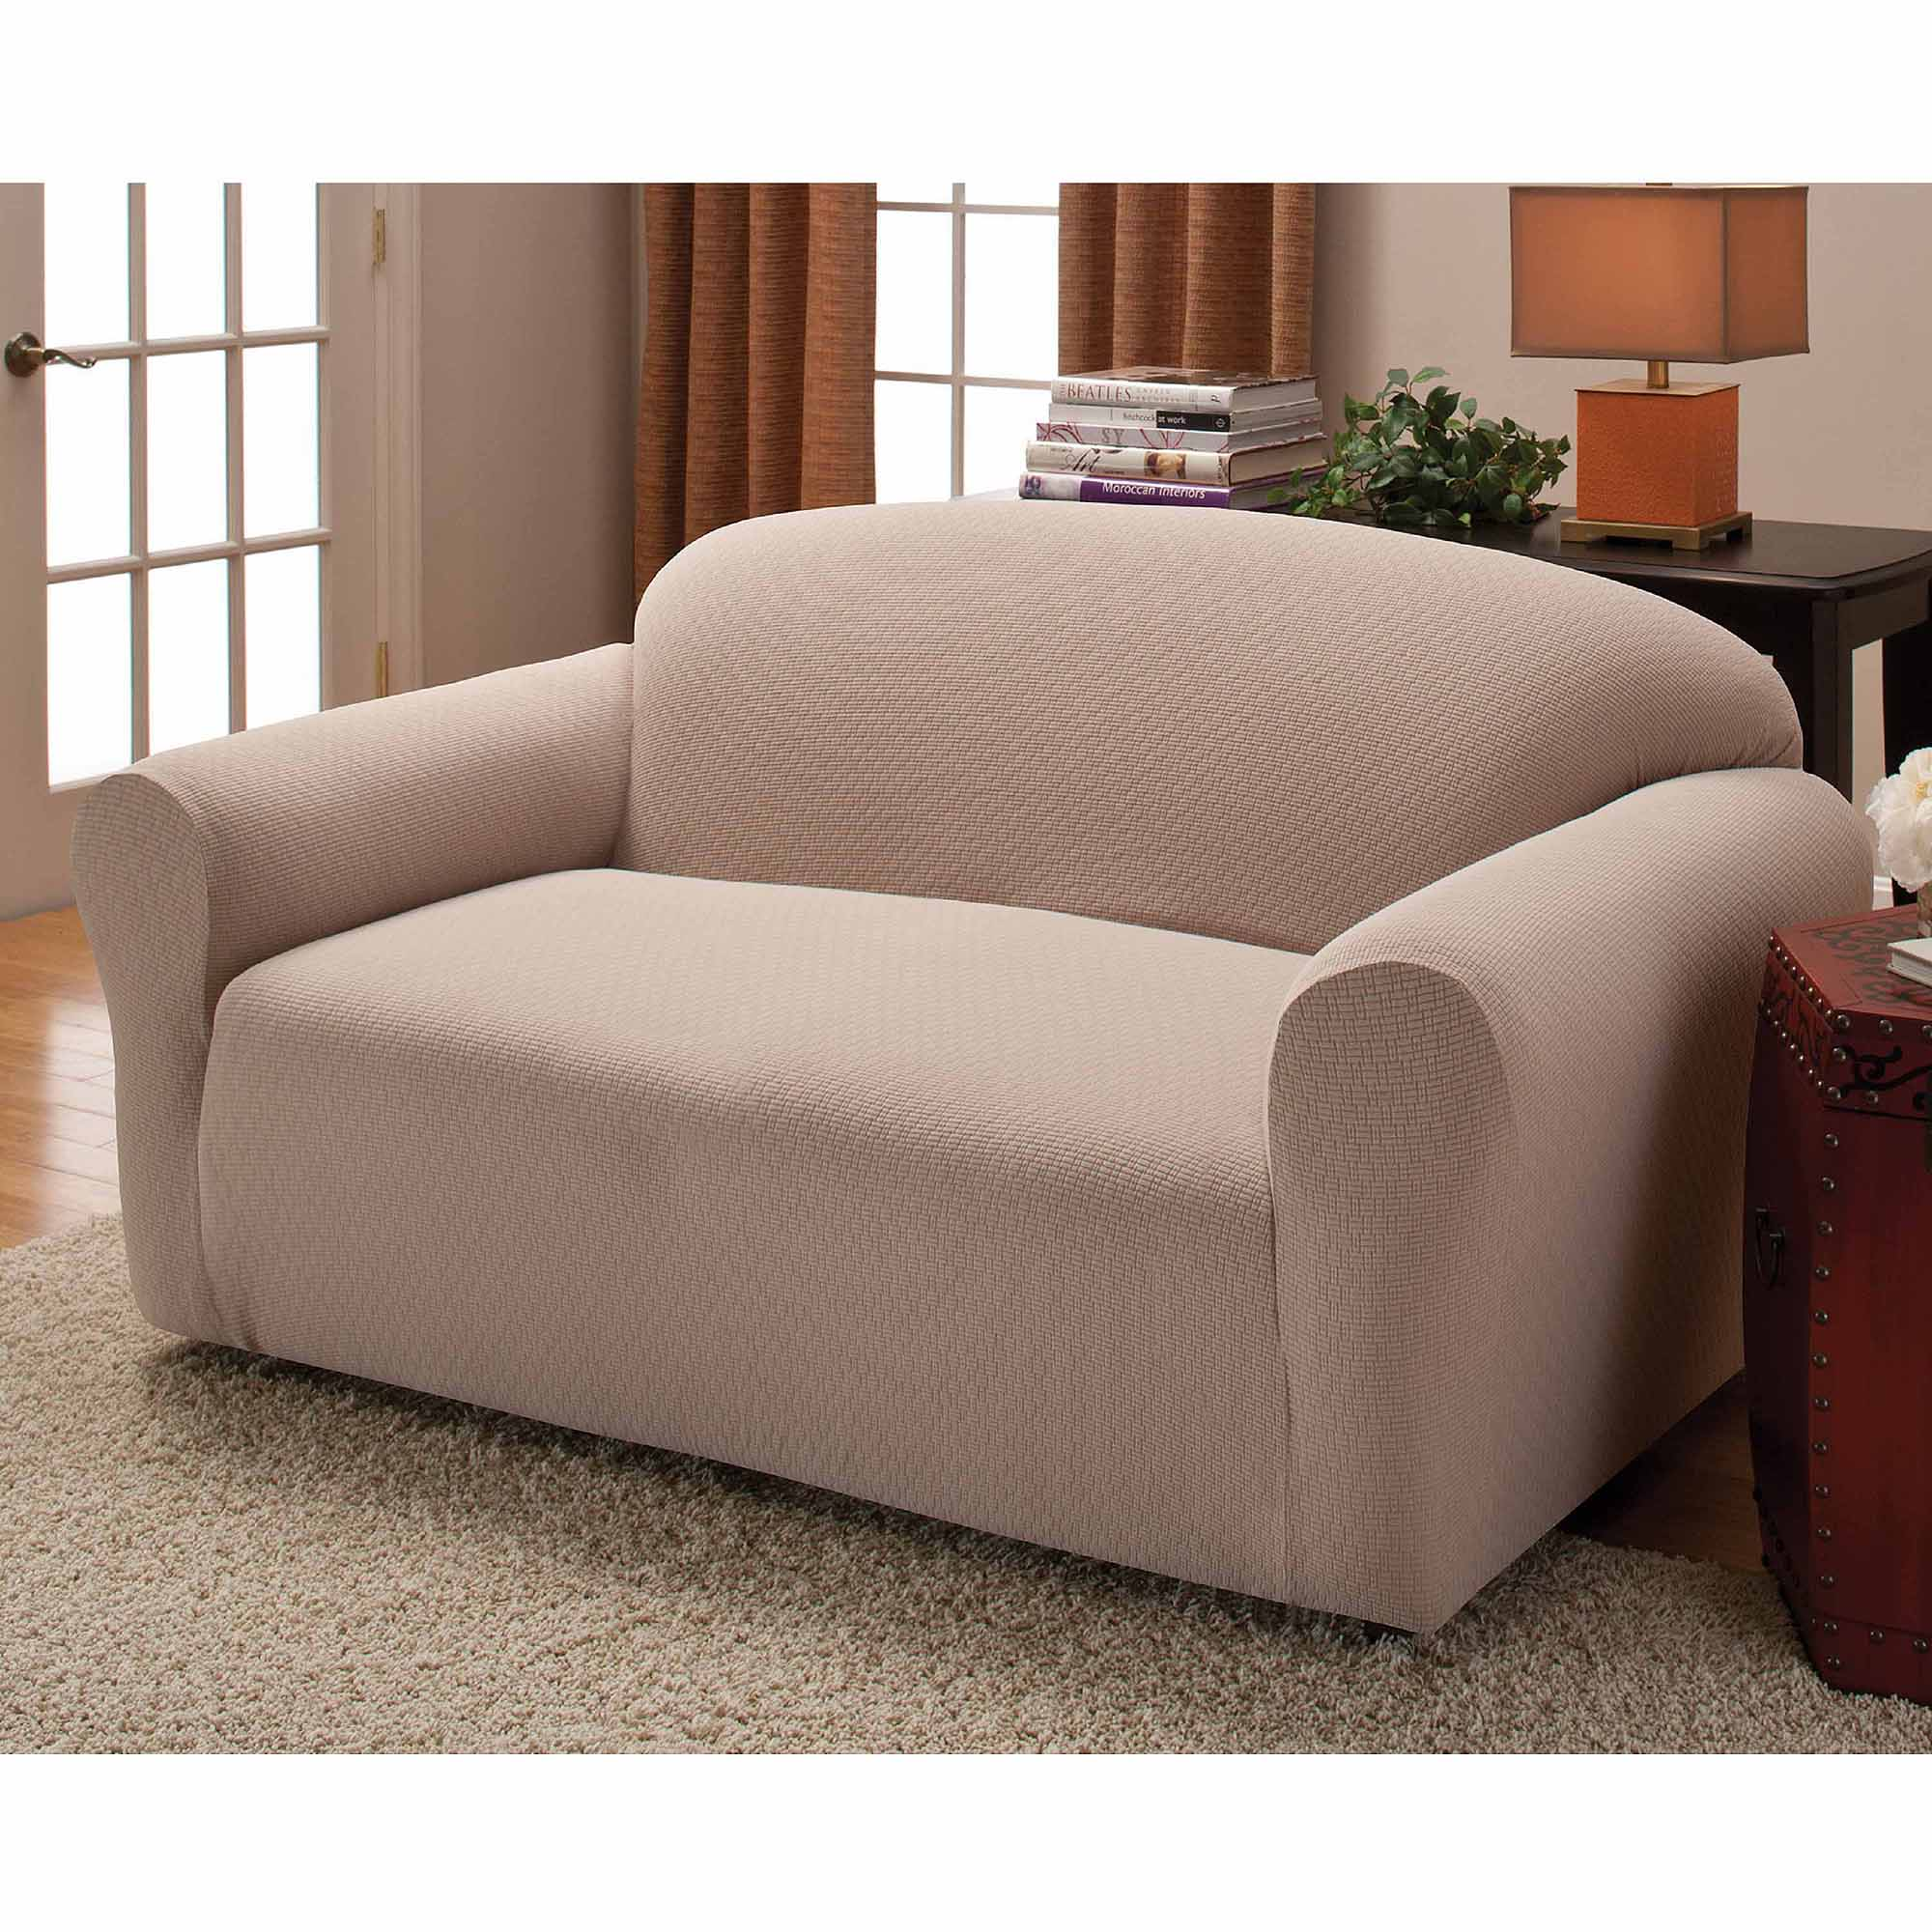 Stretch Sensations Crossroads Slipcover Sofa Couch Cover